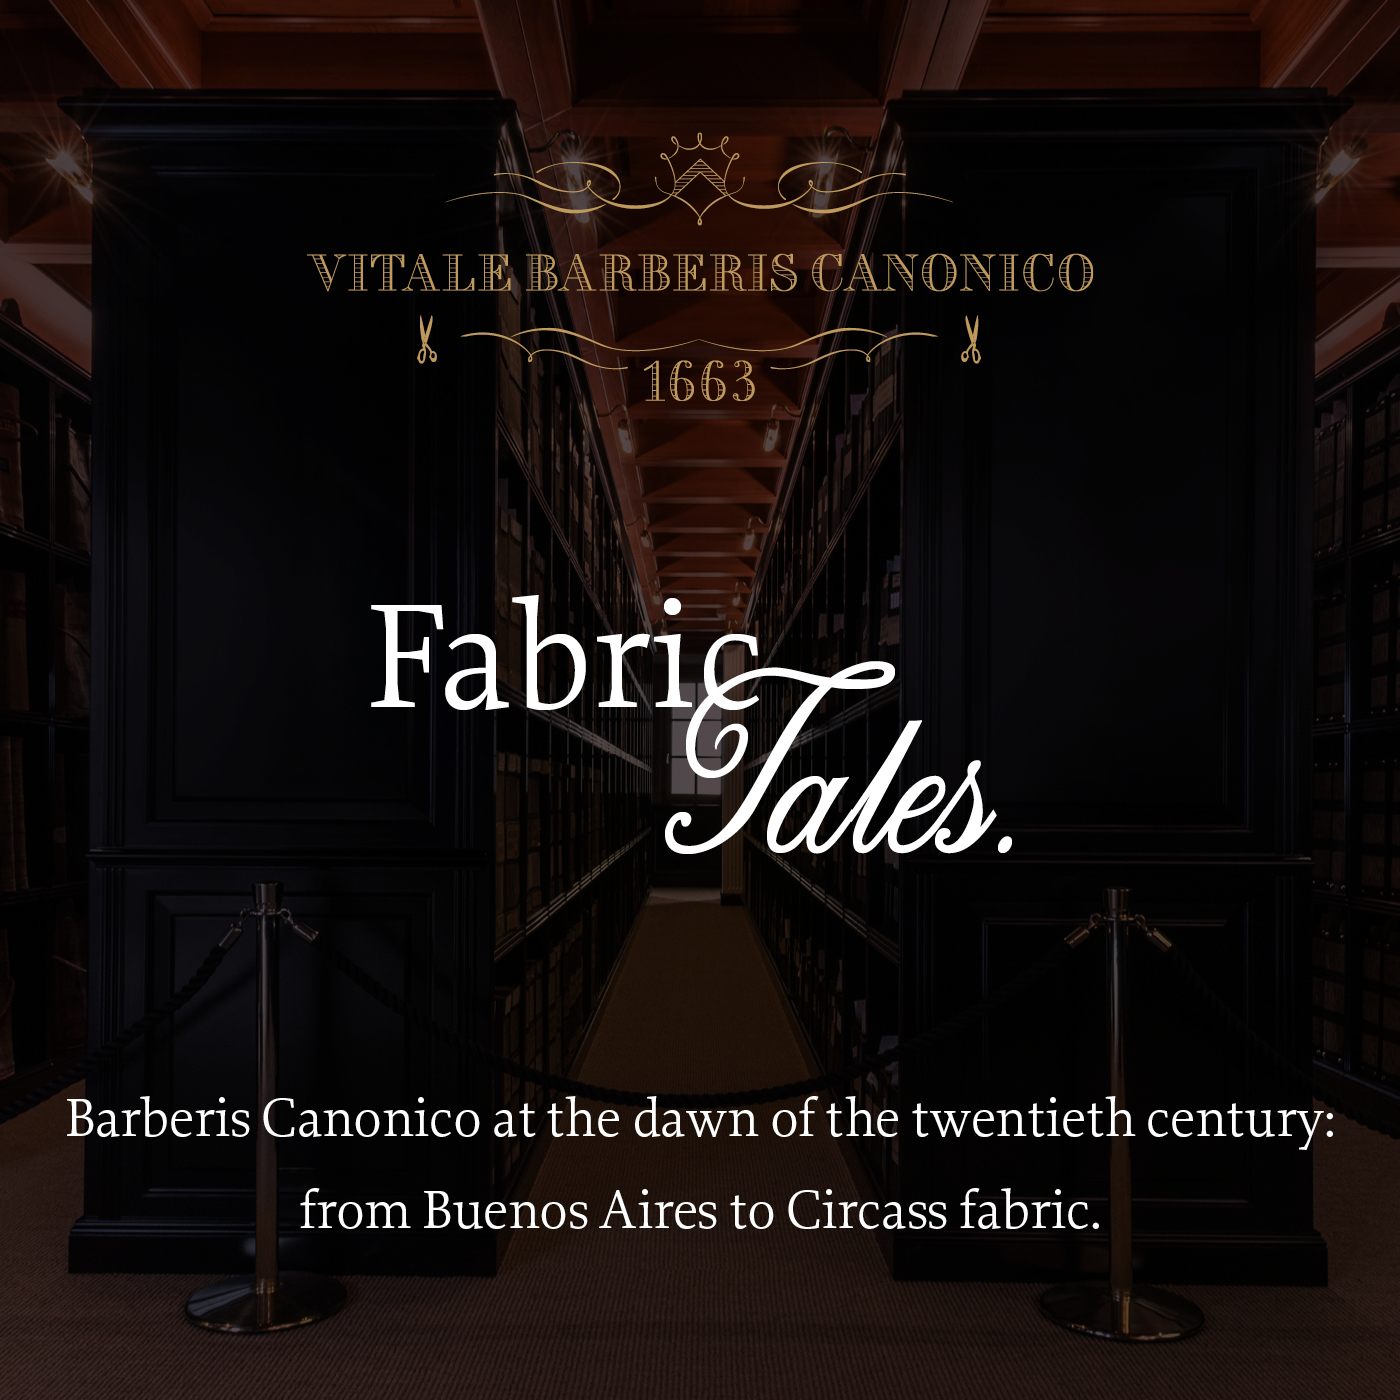 Barberis Canonico at the dawn of the twentieth century: from Buenos Aires to Circass fabric